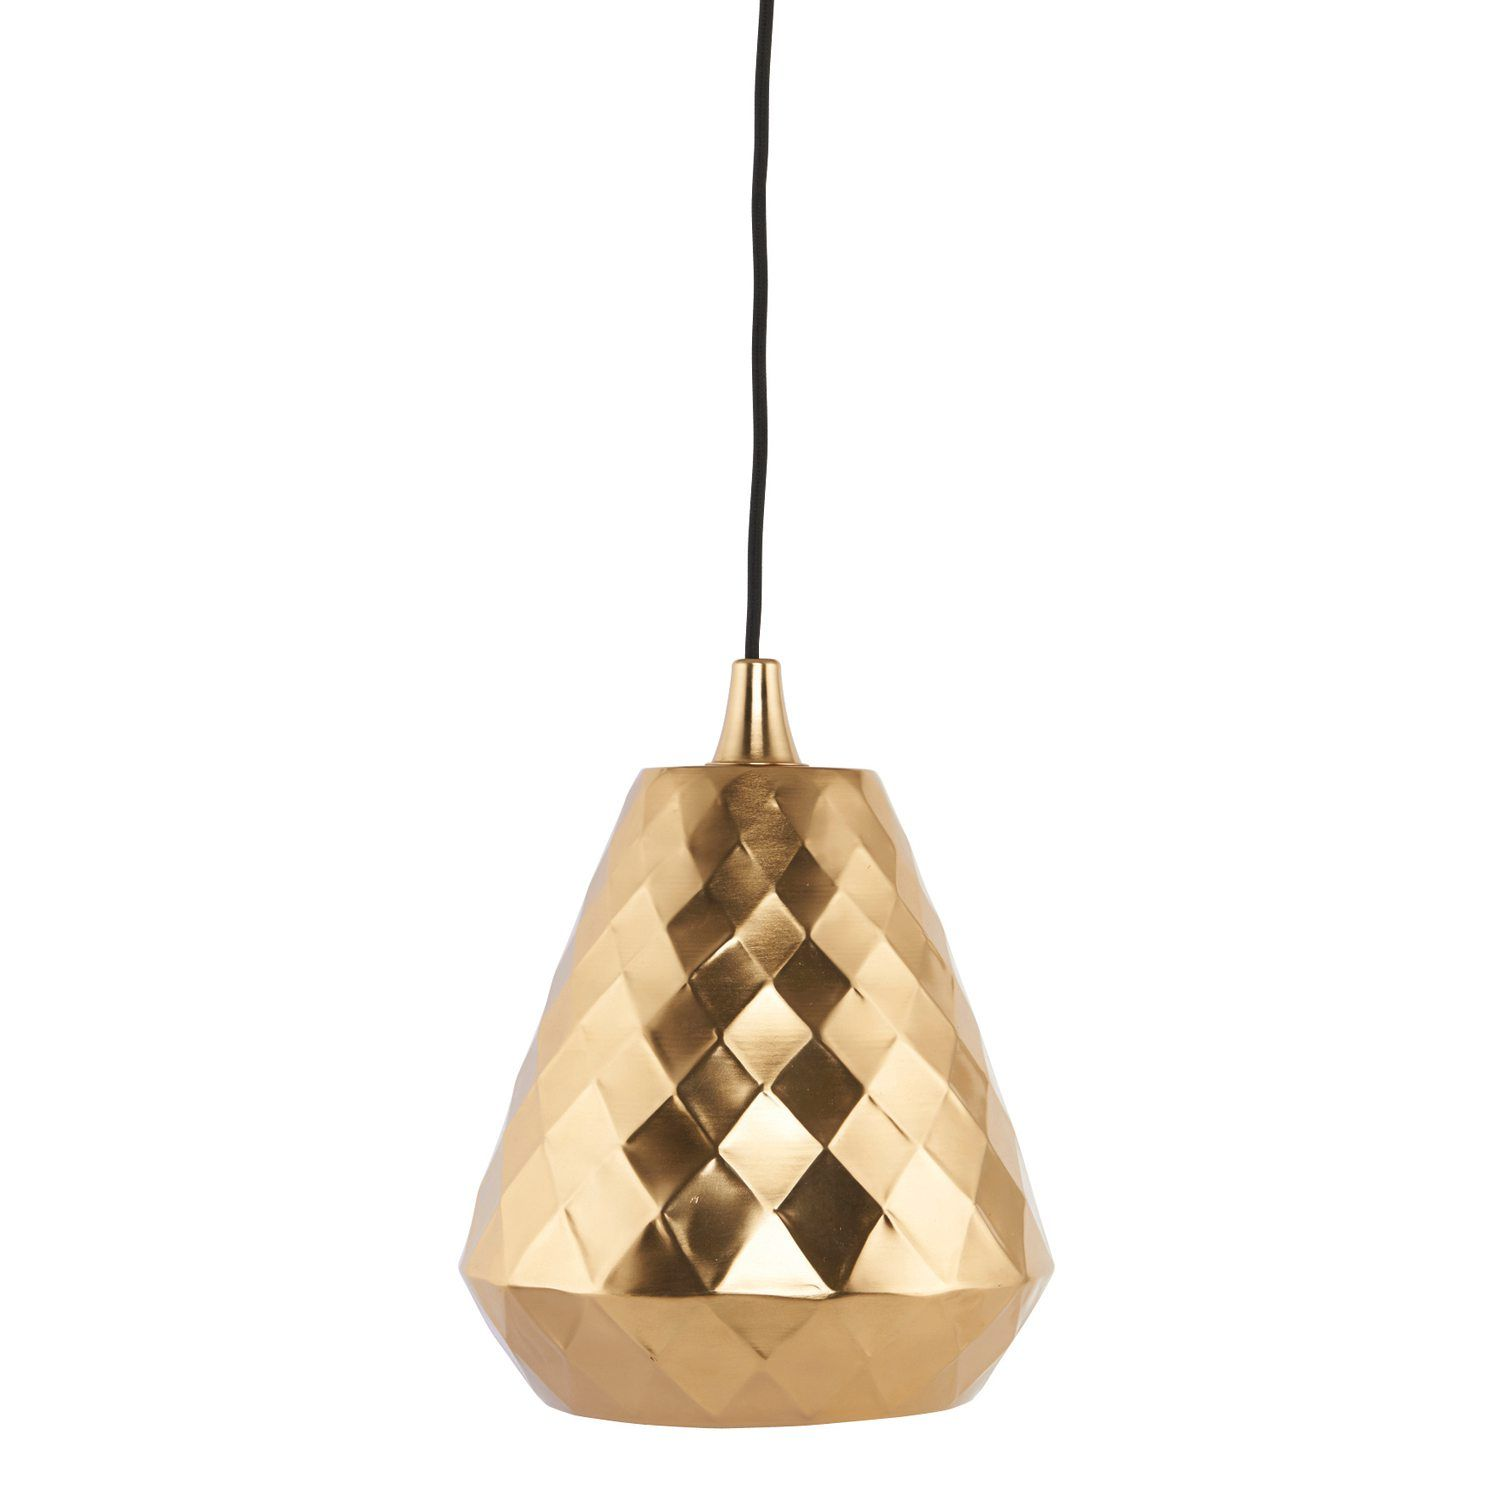 Messing Lampe Aston Lampe Messing In 2019 Products I Love Copper Pendant